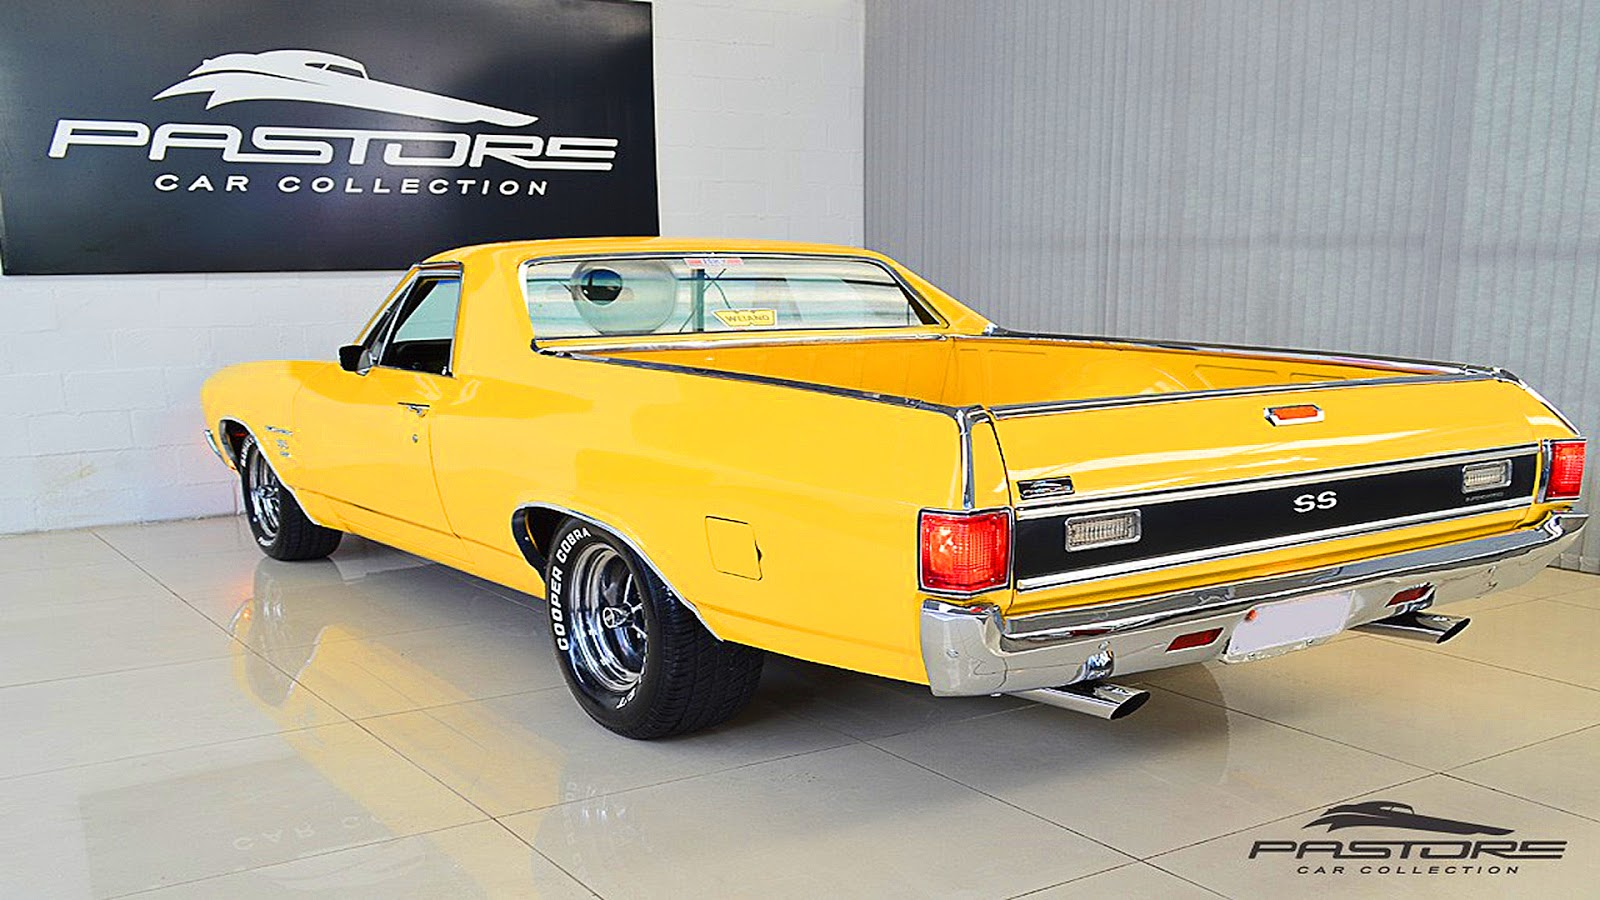 1970 Chevrolet Chevelle SS Muscle Cars In Detail No 1